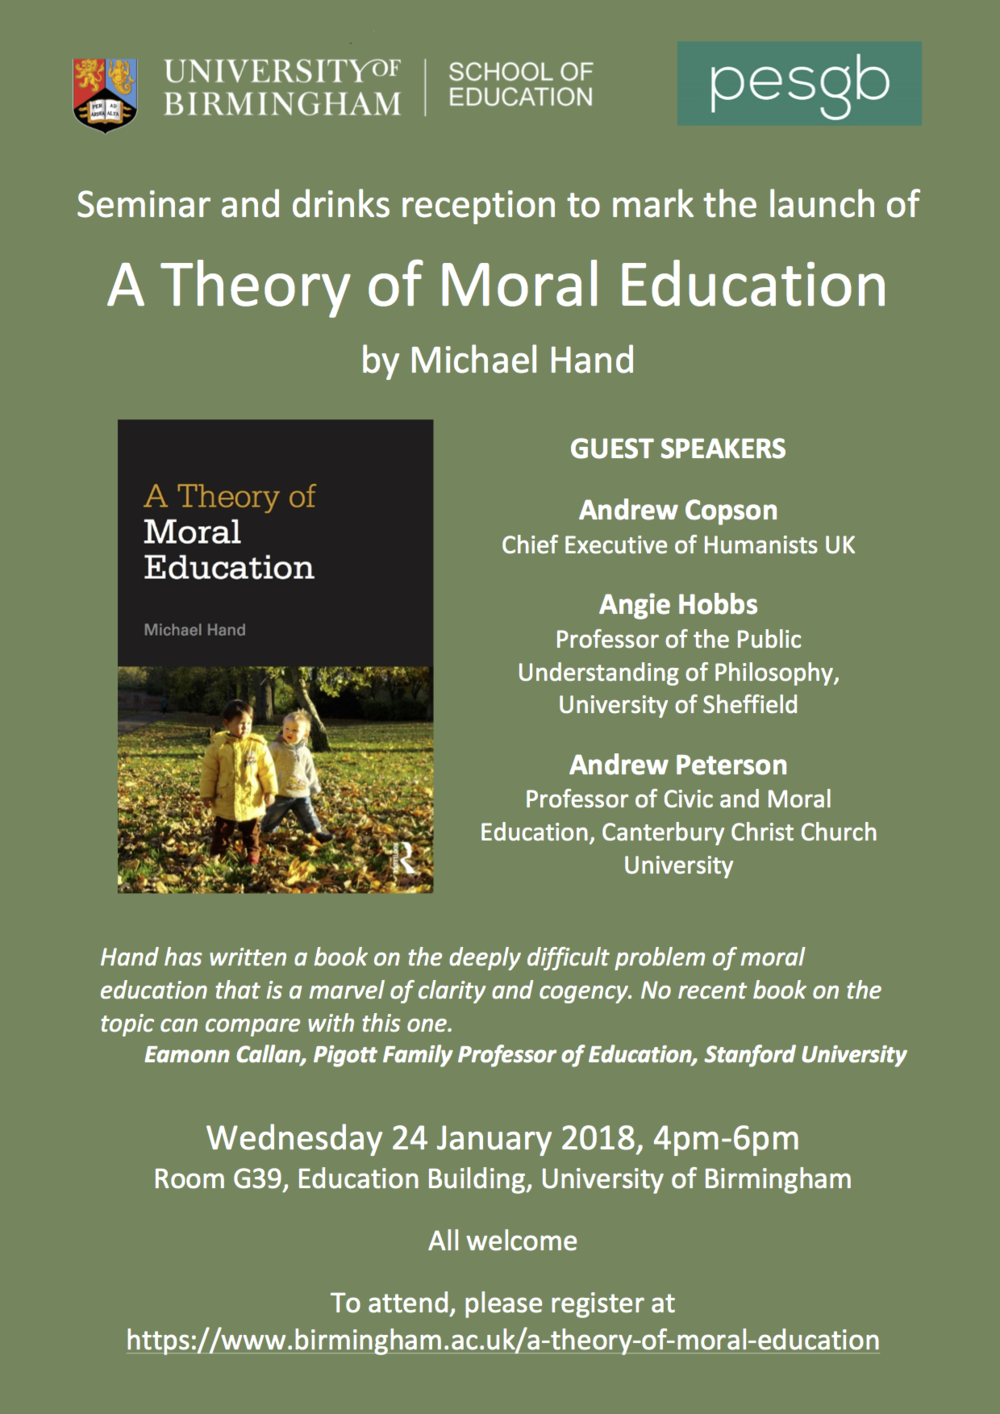 2018-01-24 A Theory of Moral Education by Michael Hand book launch.png